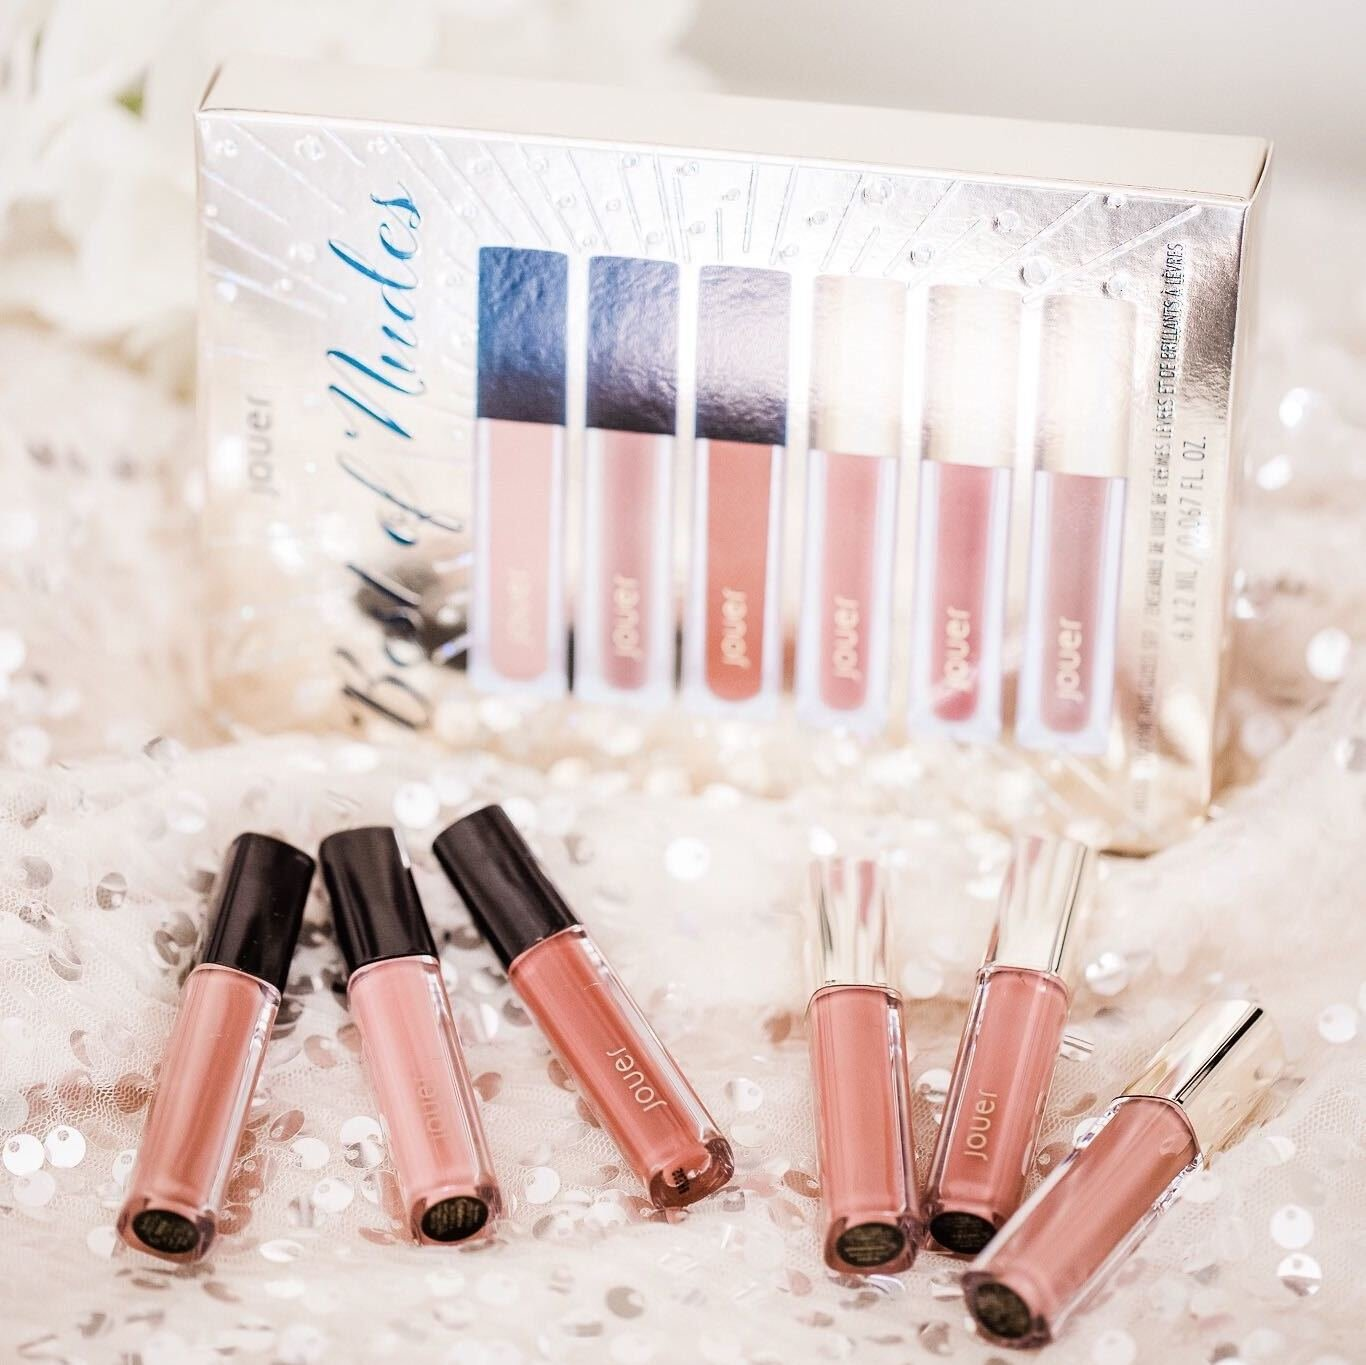 Alternate product image for Best of Nudes Deluxe Lip Creme and Gloss Set shown with the description.